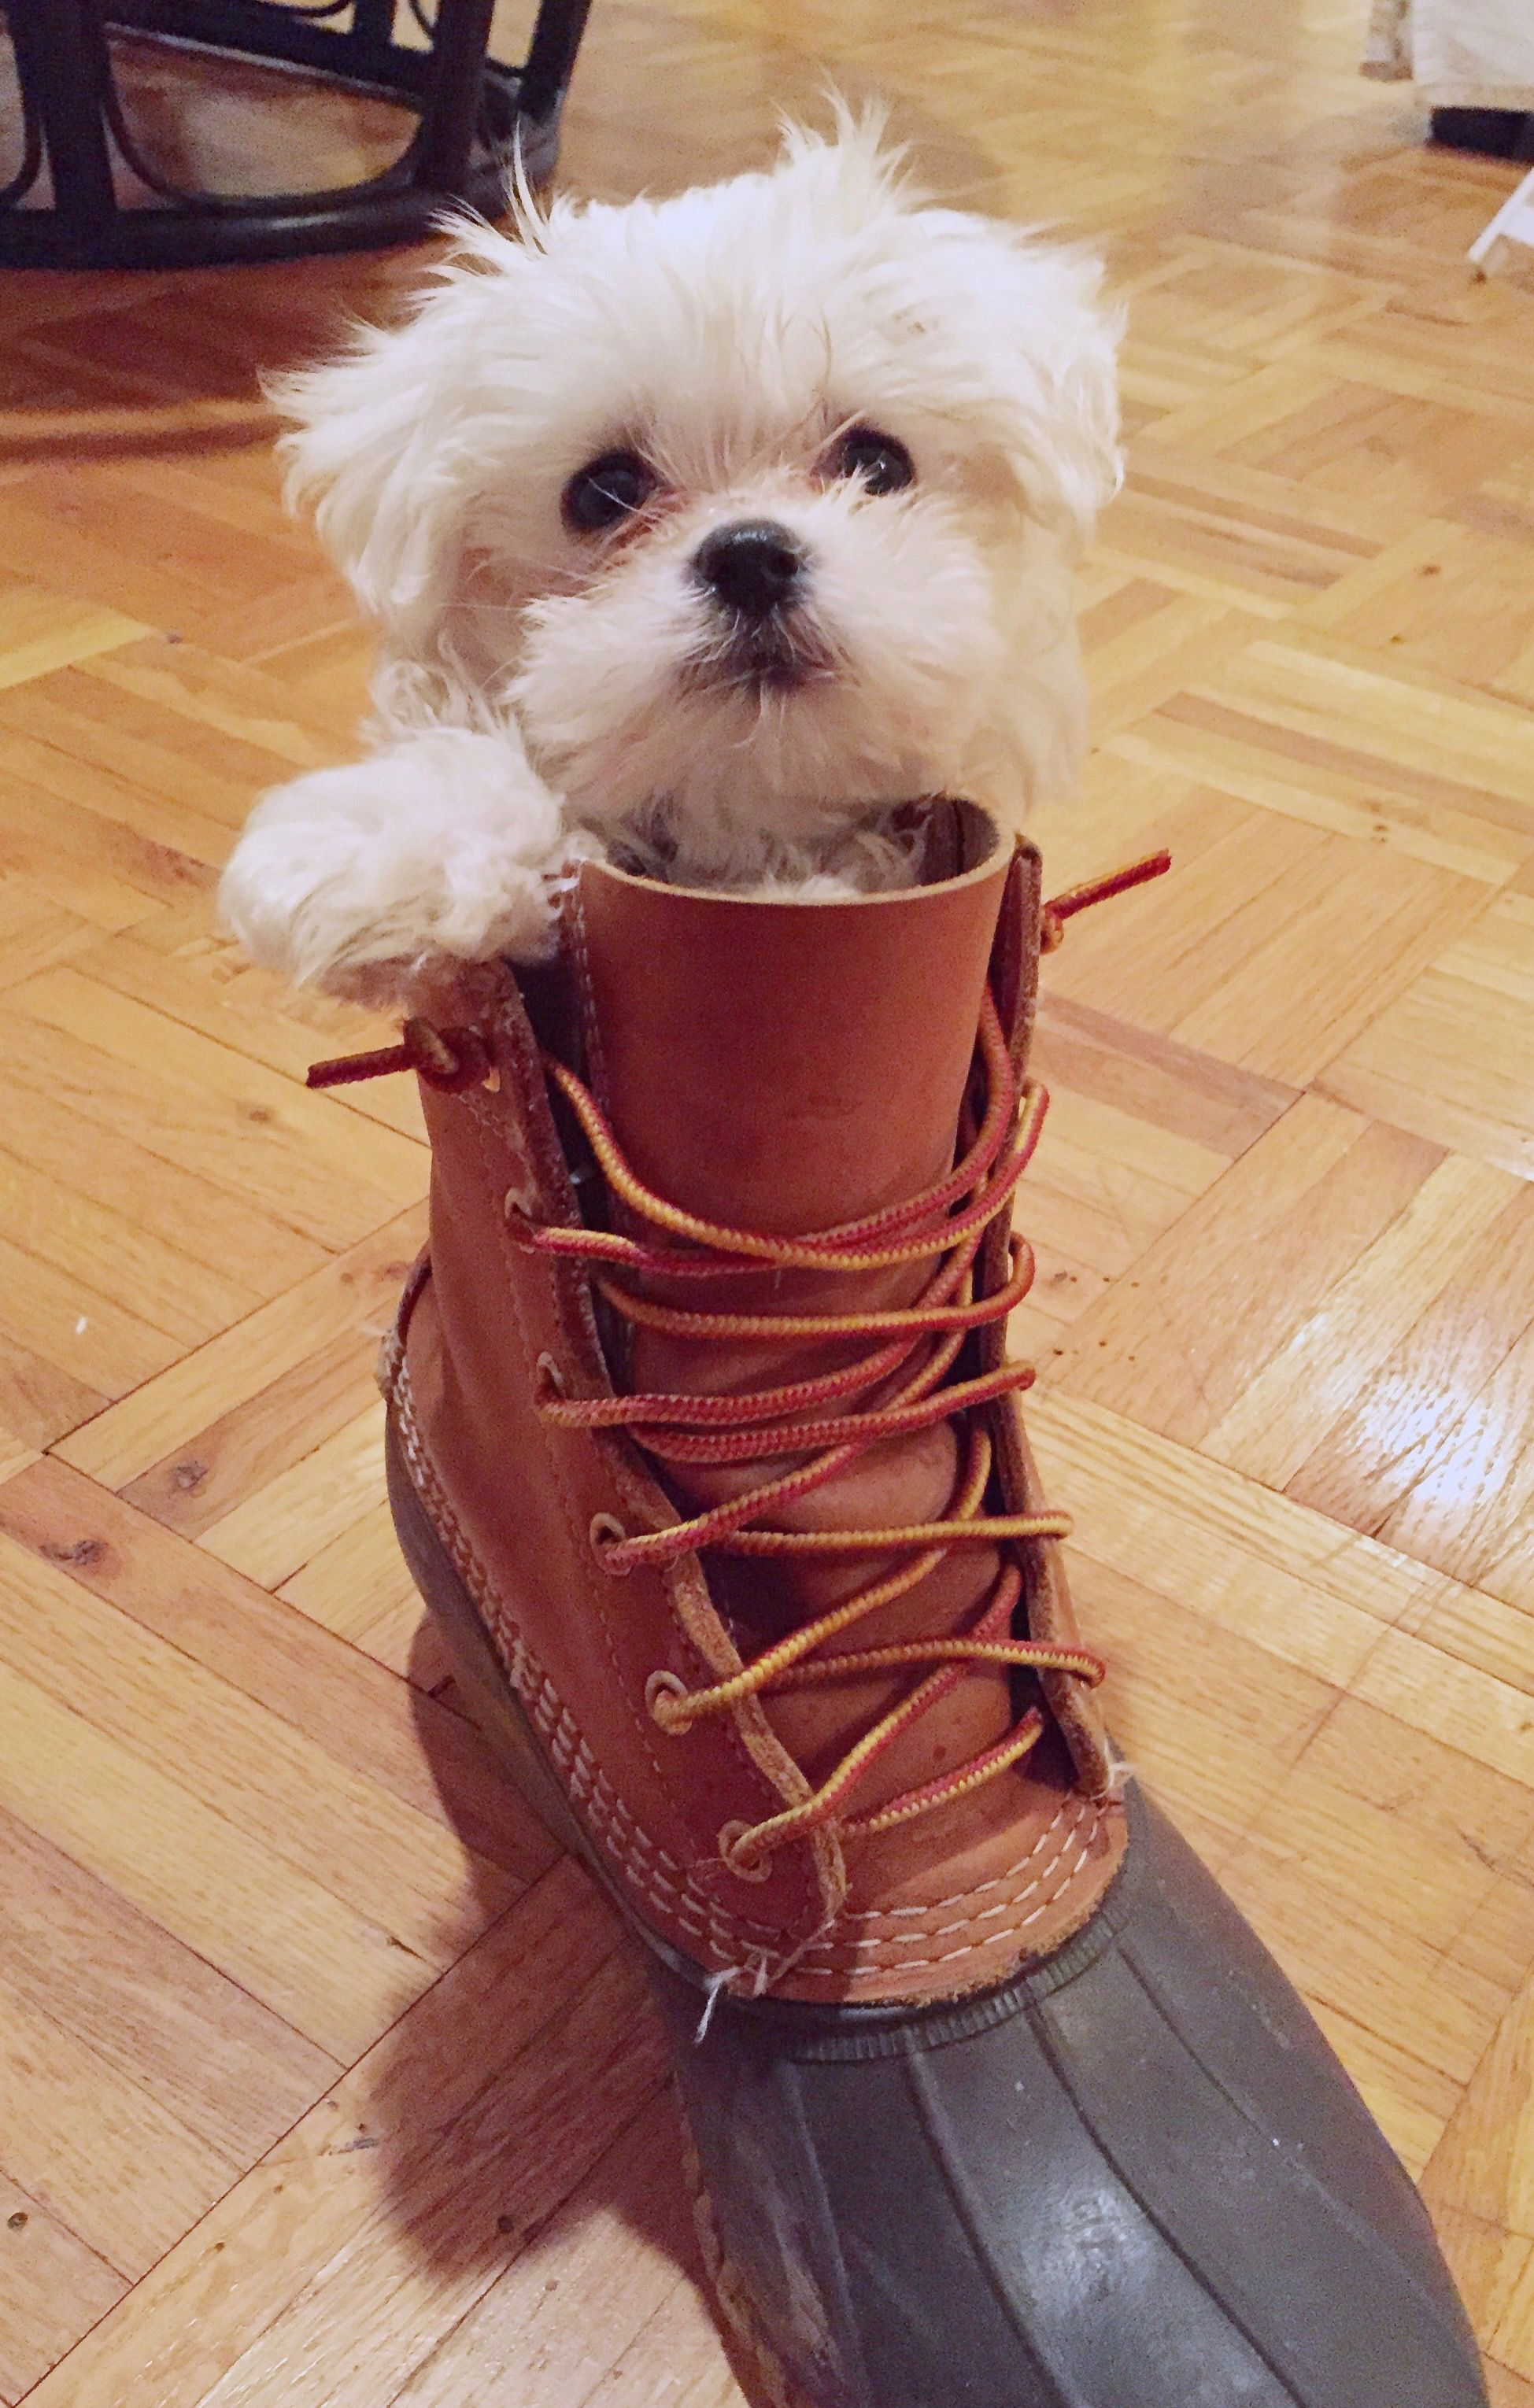 Teeny Tiny Tucker The Maltese Puppy In An L L Bean Bean Boot The Cutest Little Munchkin Ever Maltese Dogs Maltese Puppy Dog Exercise